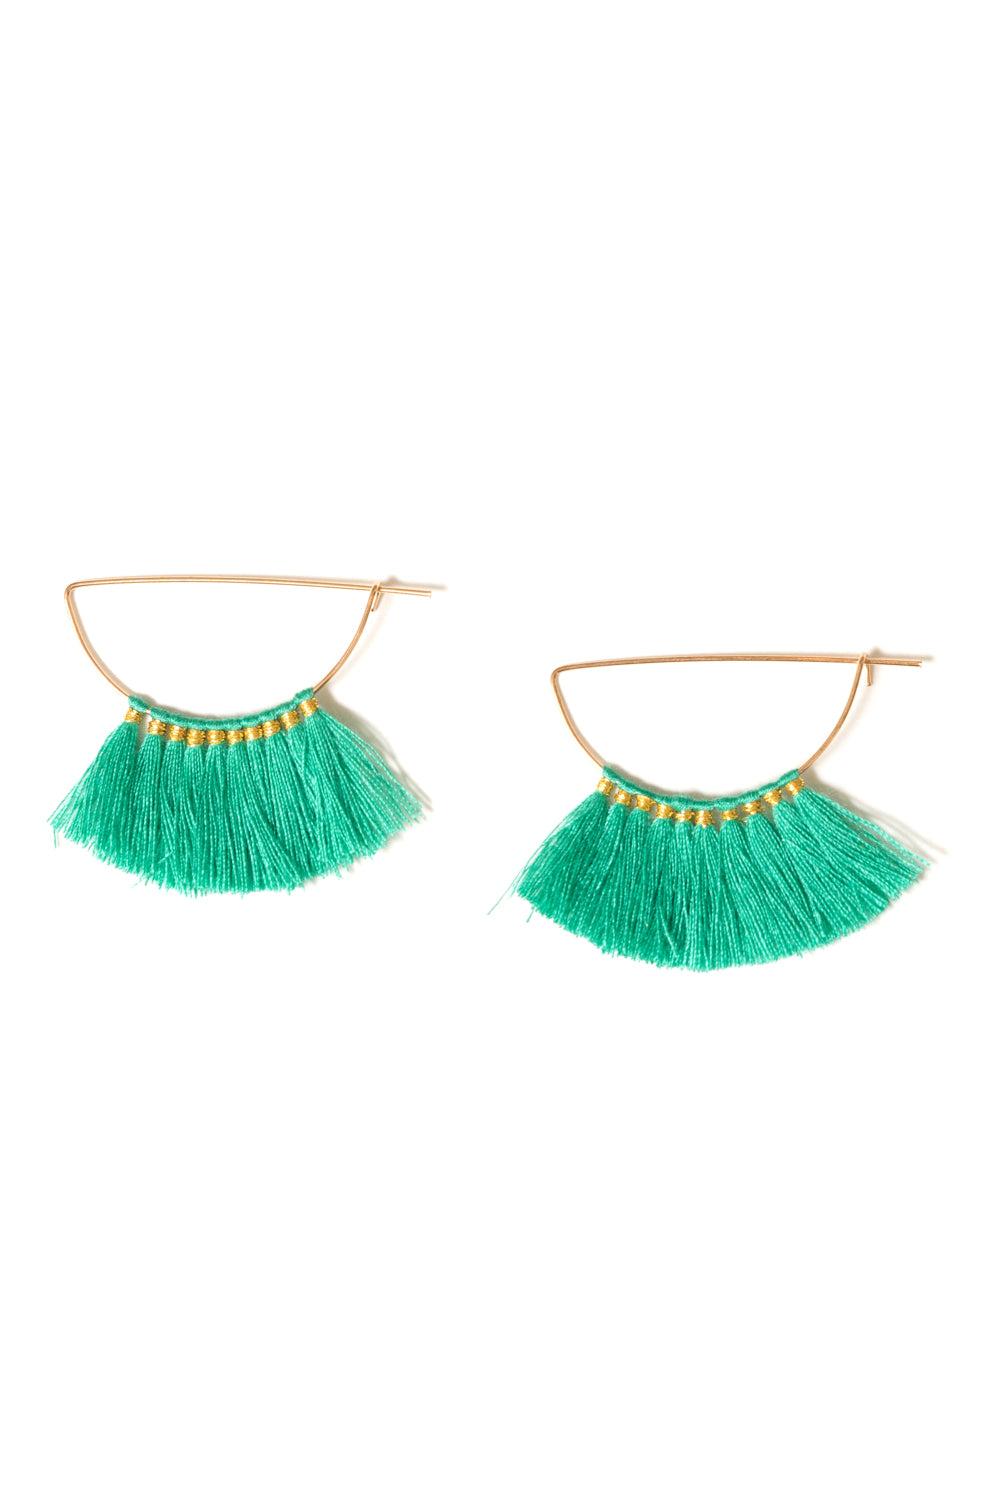 green cotton fringe tassel hoop earrings by janna conner